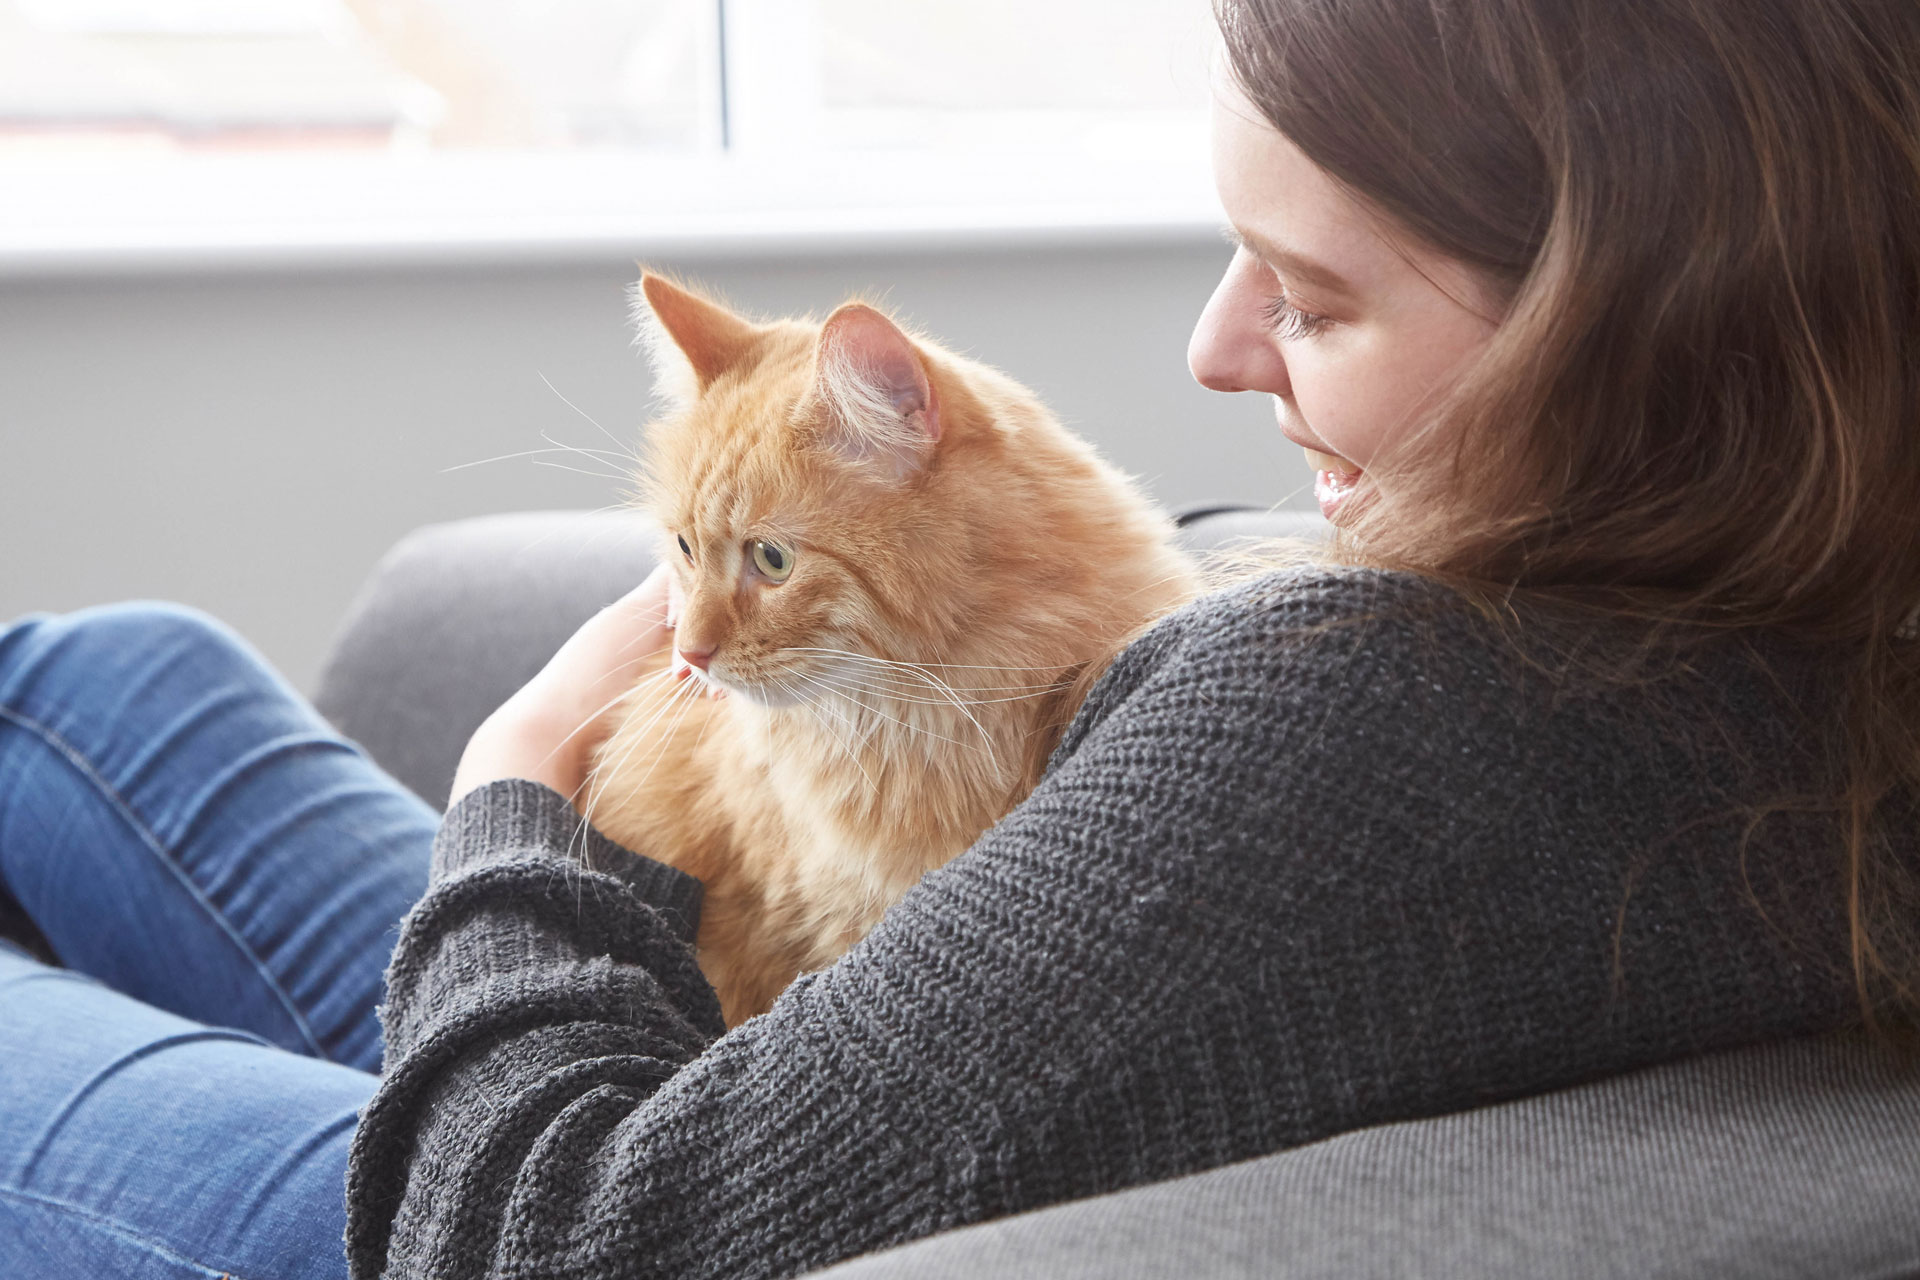 Owner sitting with cat